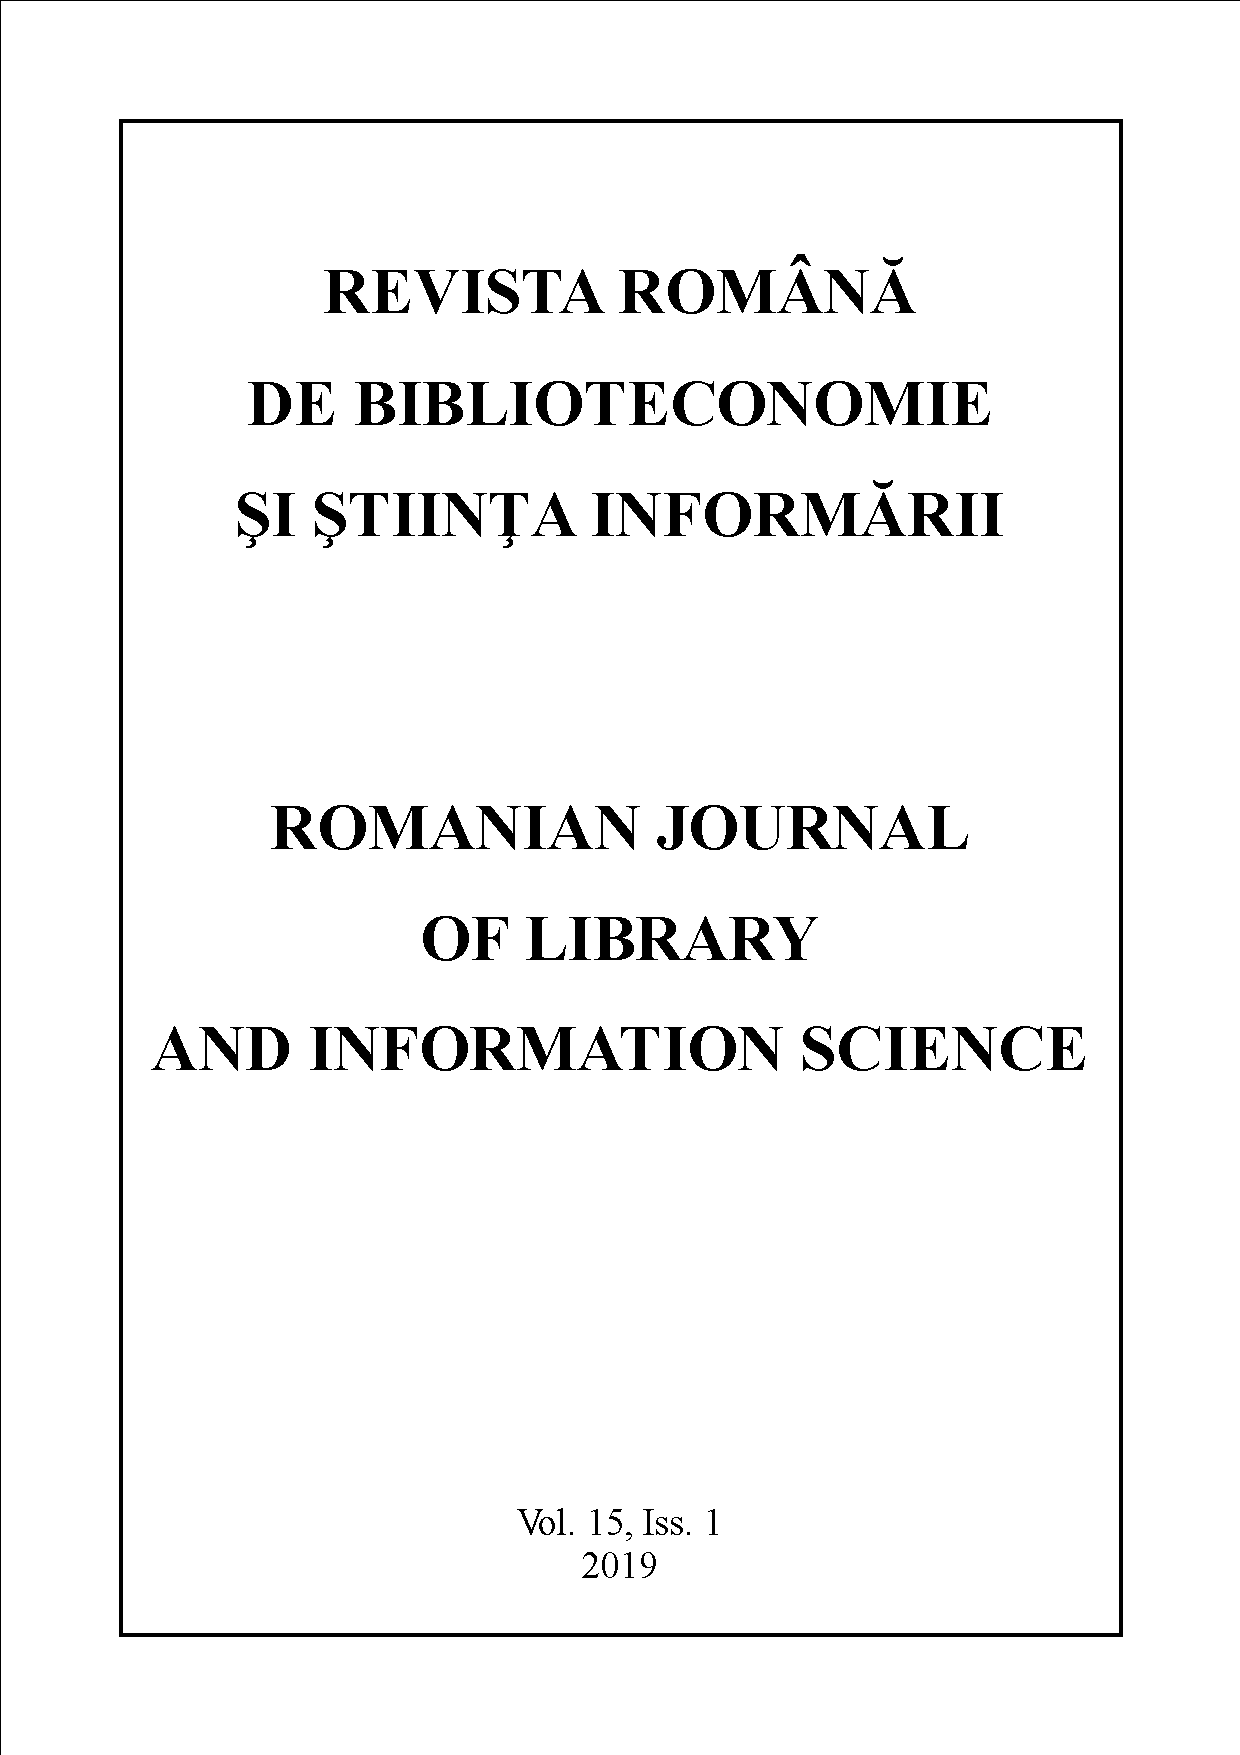 Romanian Journal of Library and Information Science - Vol. 15, Iss. 1, 2019